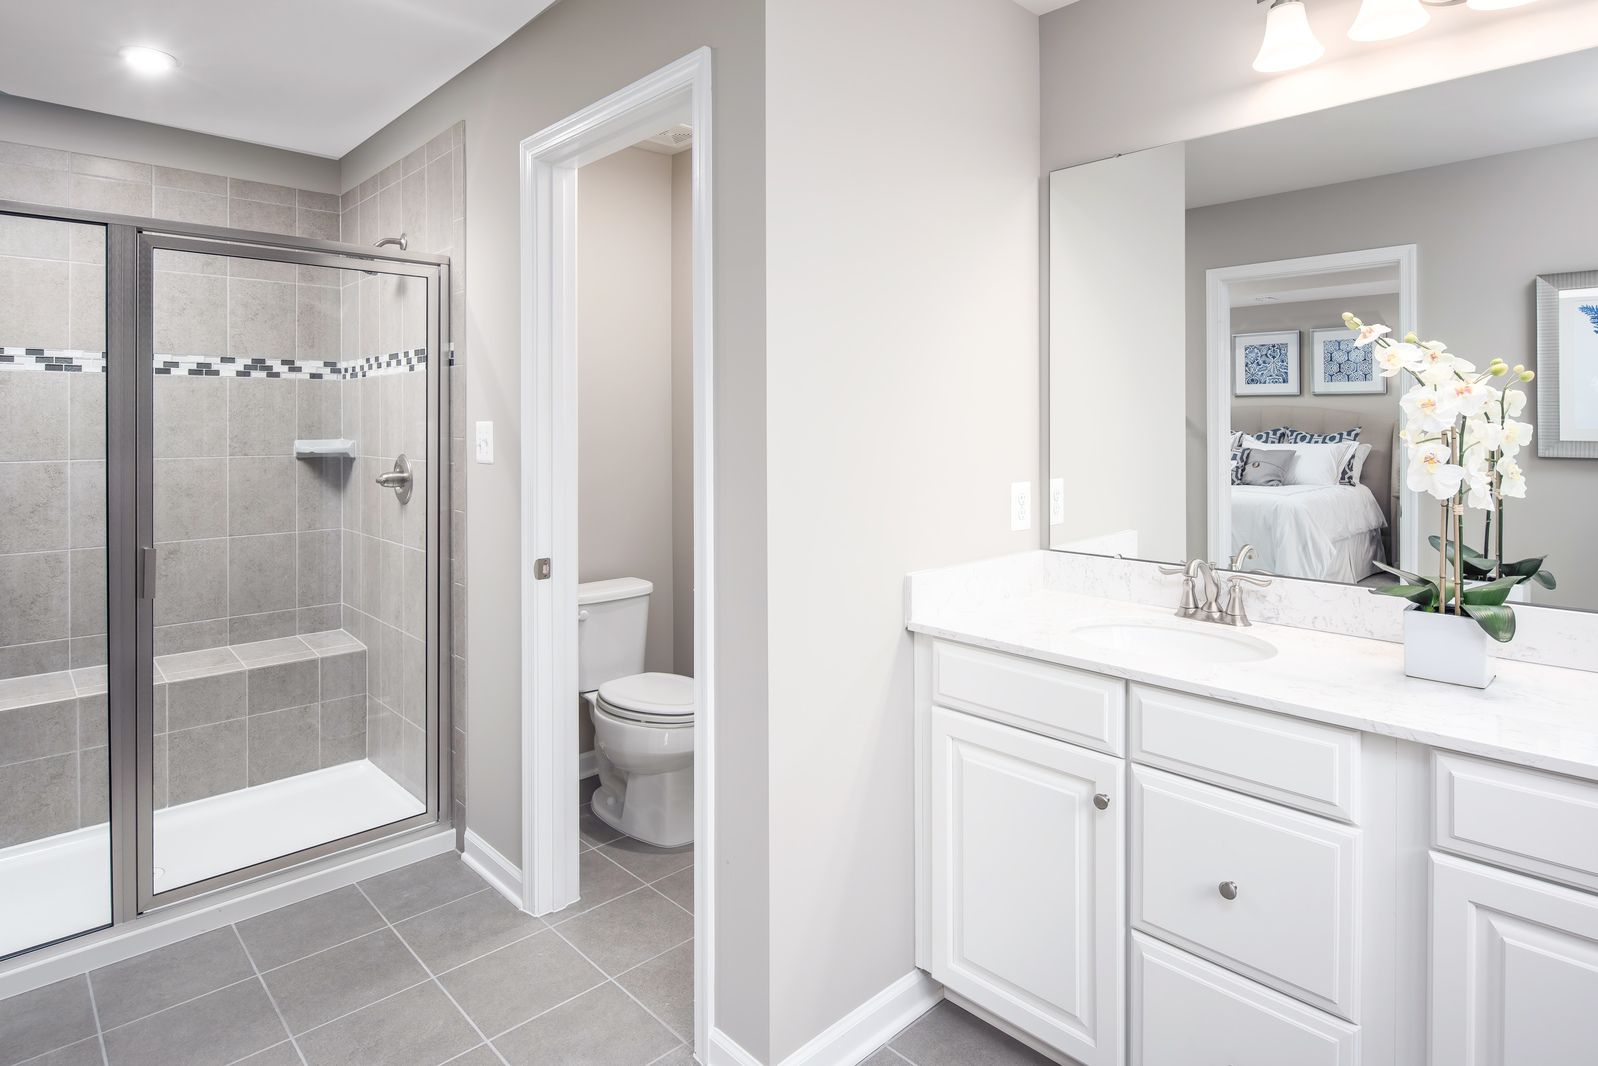 Bathroom featured in the Columbia By HeartlandHomes in Morgantown, WV